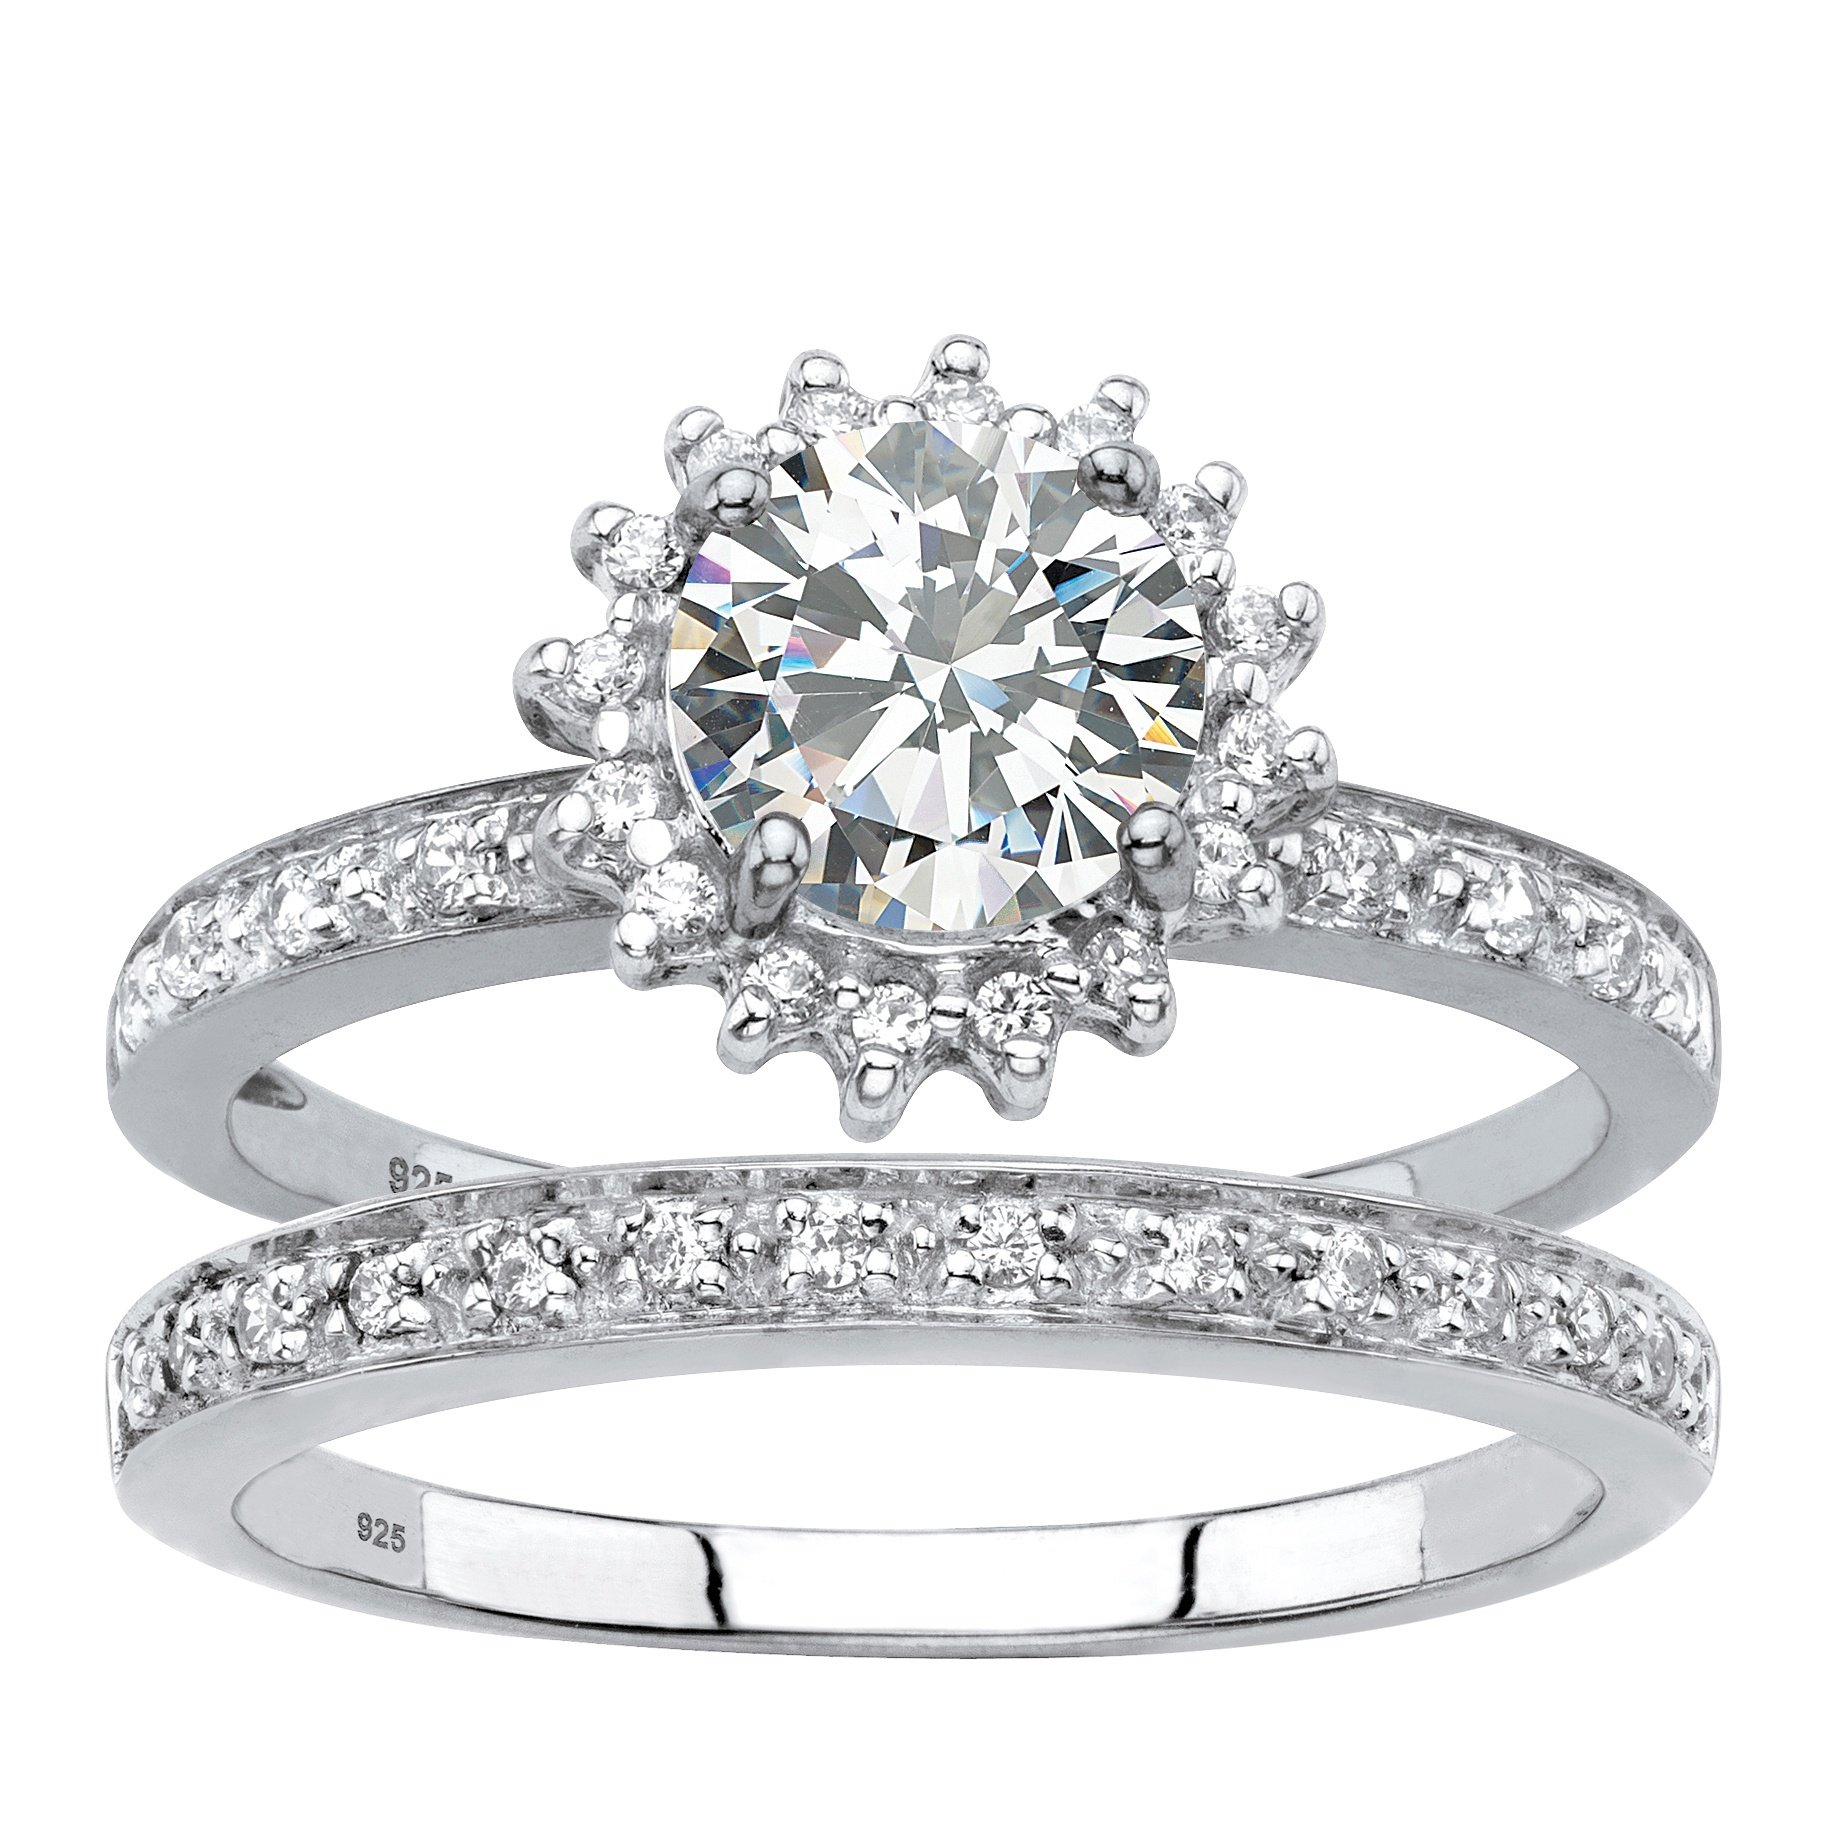 Genuine Diamond and Lab Created White Sapphire 2-Piece Halo Wedding Ring Set 1.98 TCW in Platinum ov Size 10